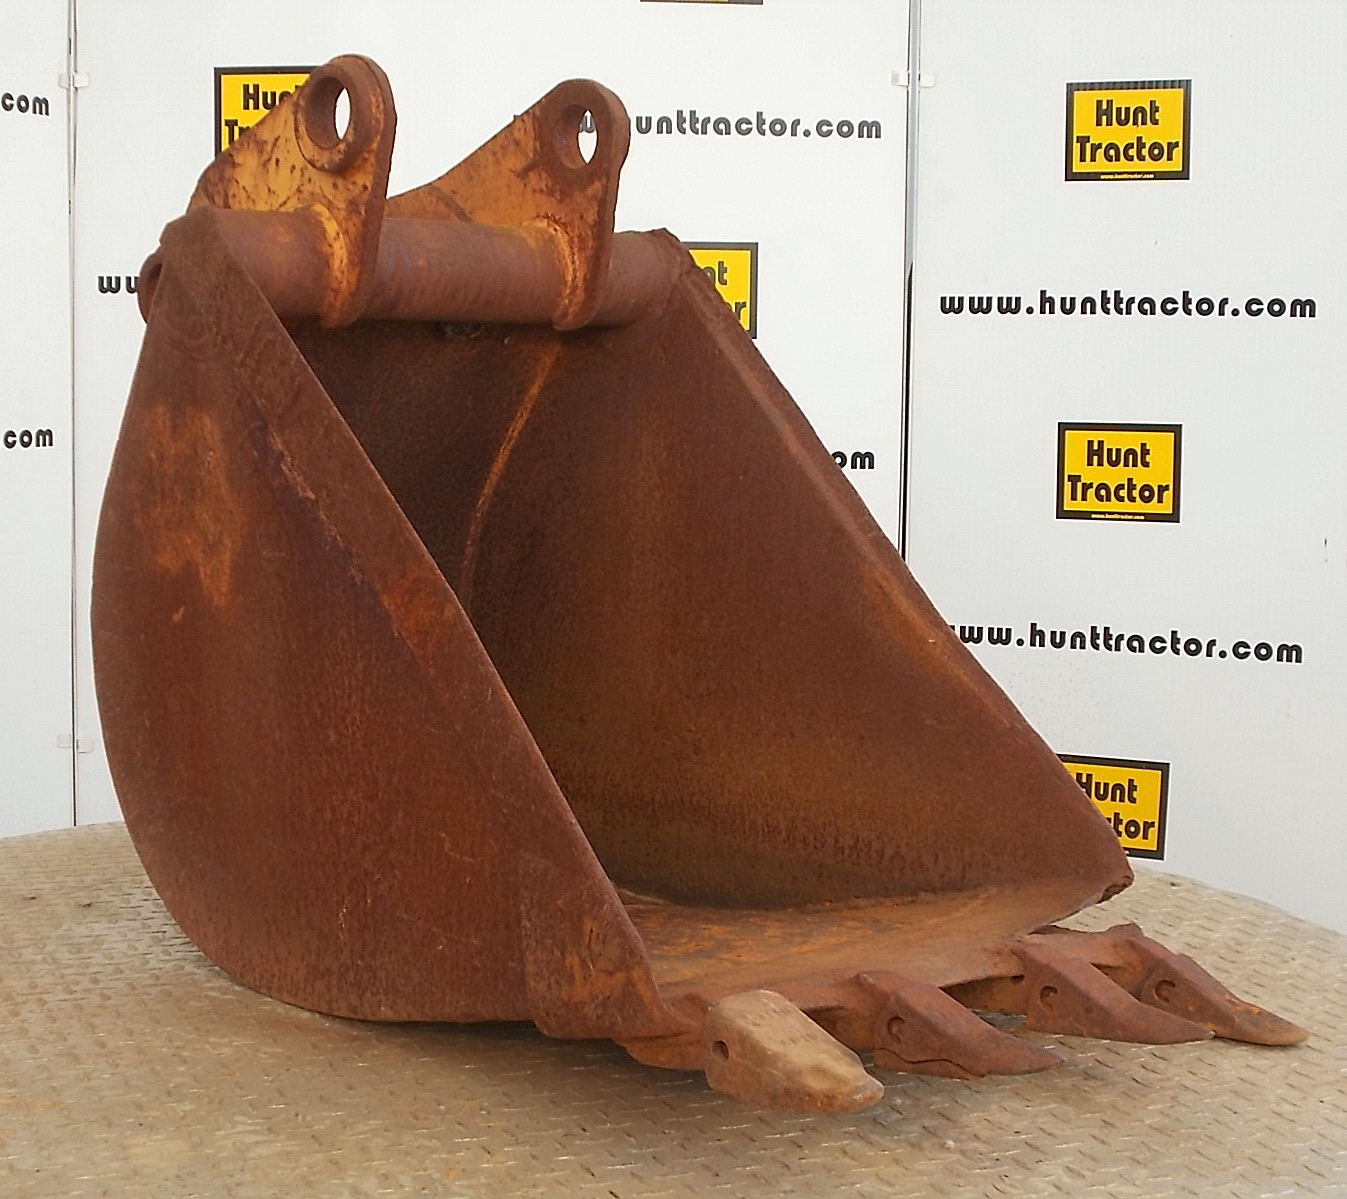 40480-24in Case 580C Bucket-1